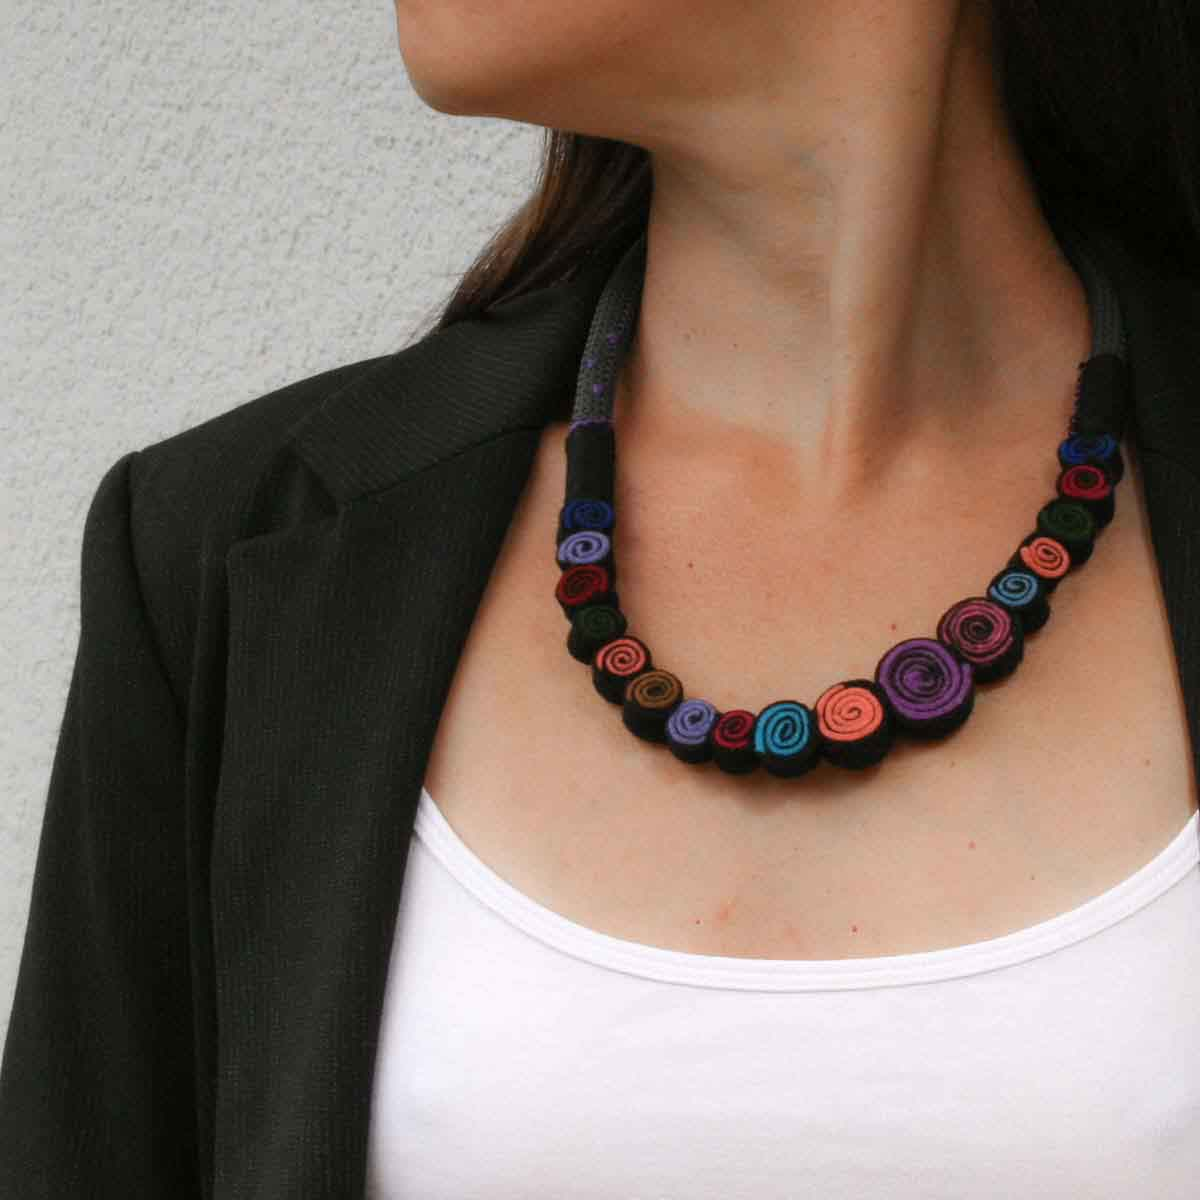 Statement felt necklace designed and made for Bead A Boo by katerina Glinou.